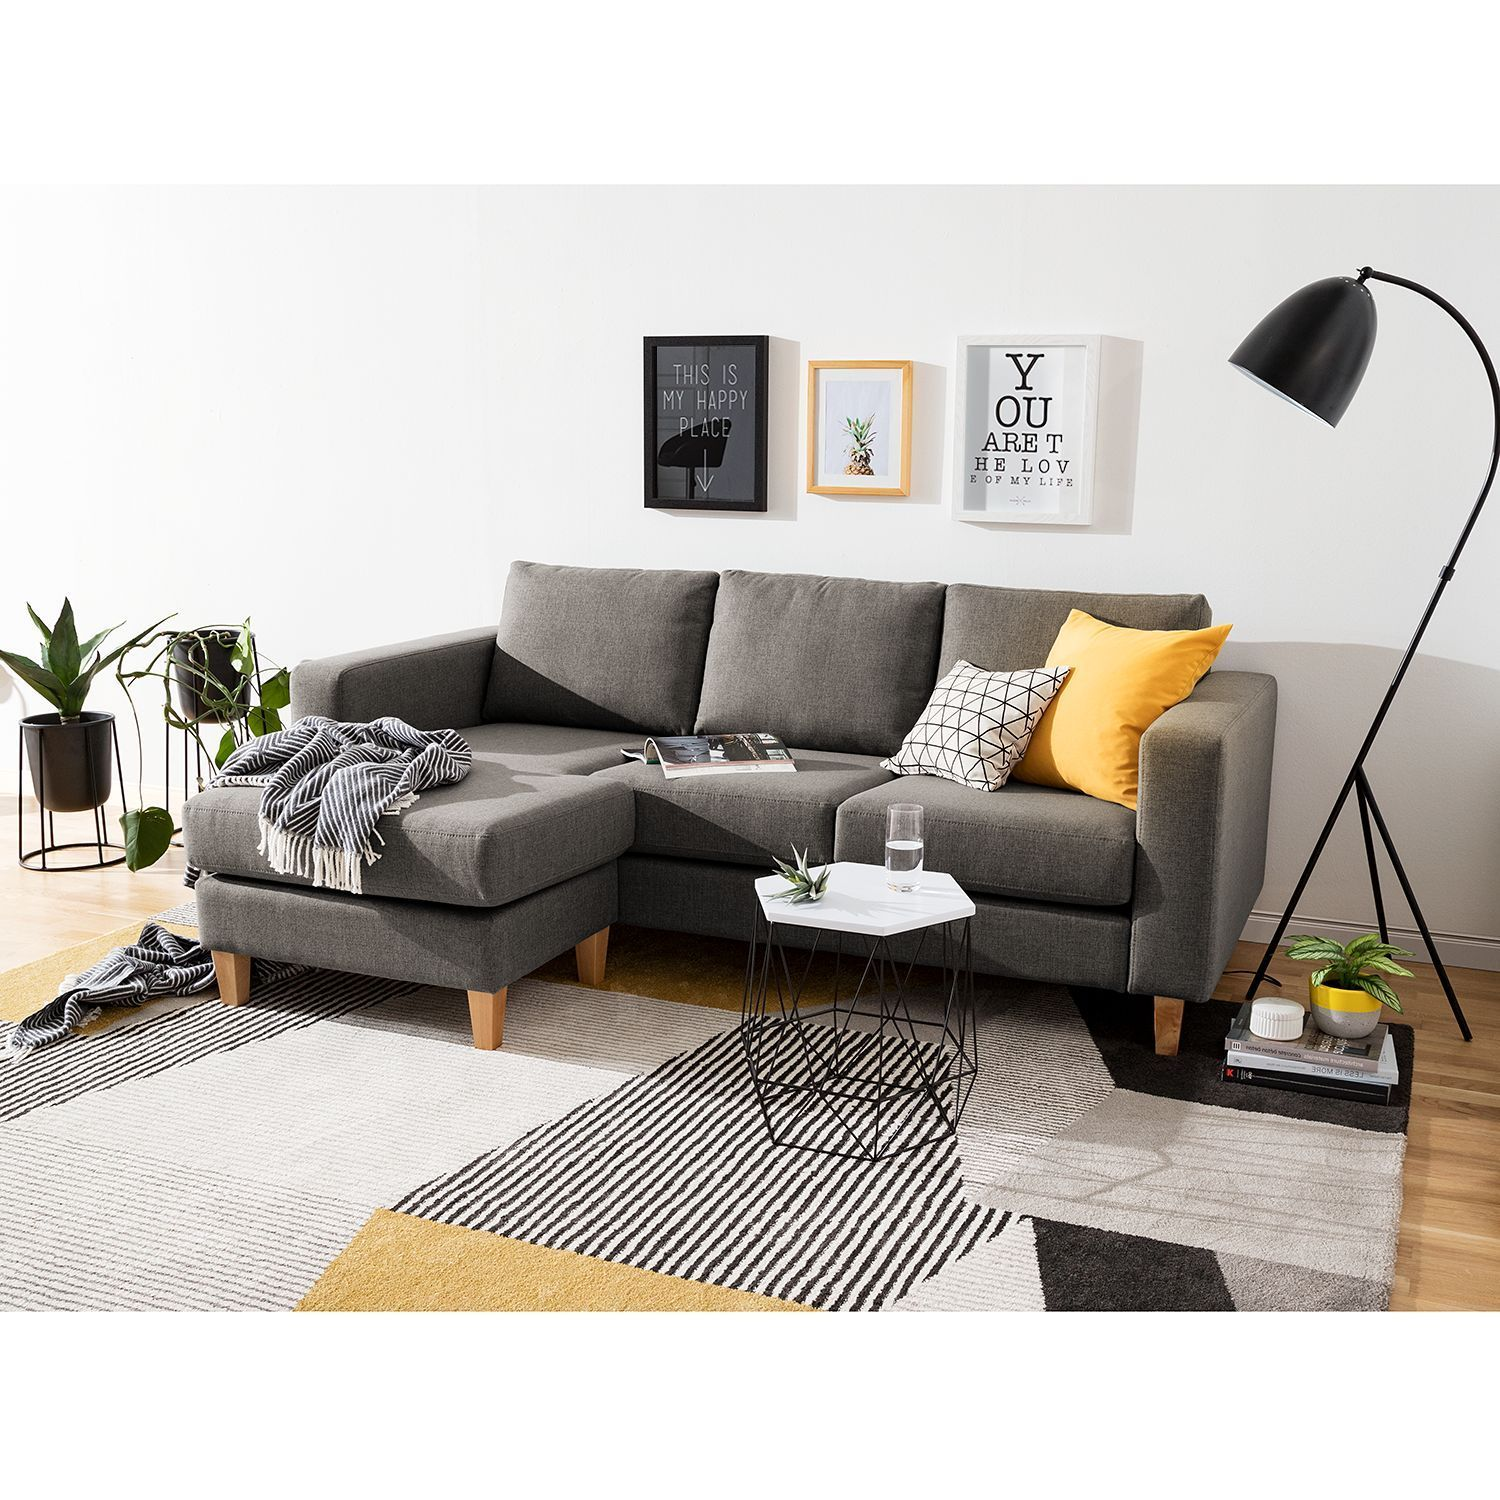 Pin On Products In 2020 Corner Sofa Ikea Living Room Couches Living Room